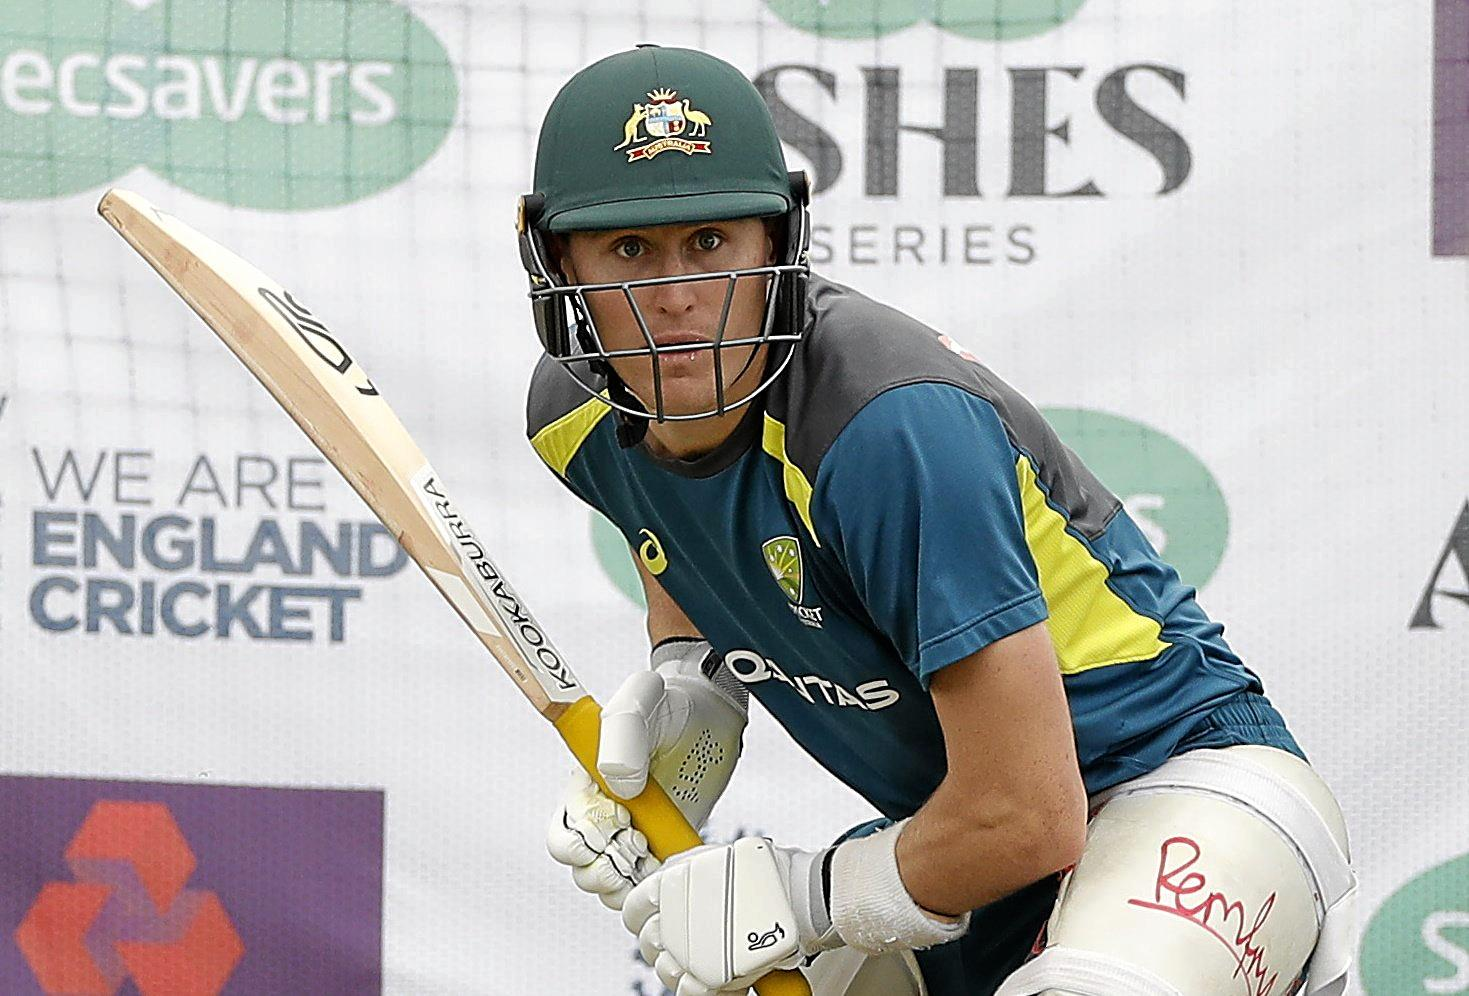 LEEDS, ENGLAND - AUGUST 20: Marnus Labuschagne of Australia bats during the Australia Nets session at Headingley on August 20, 2019 in Leeds, England. (Photo by Ryan Pierse/Getty Images)